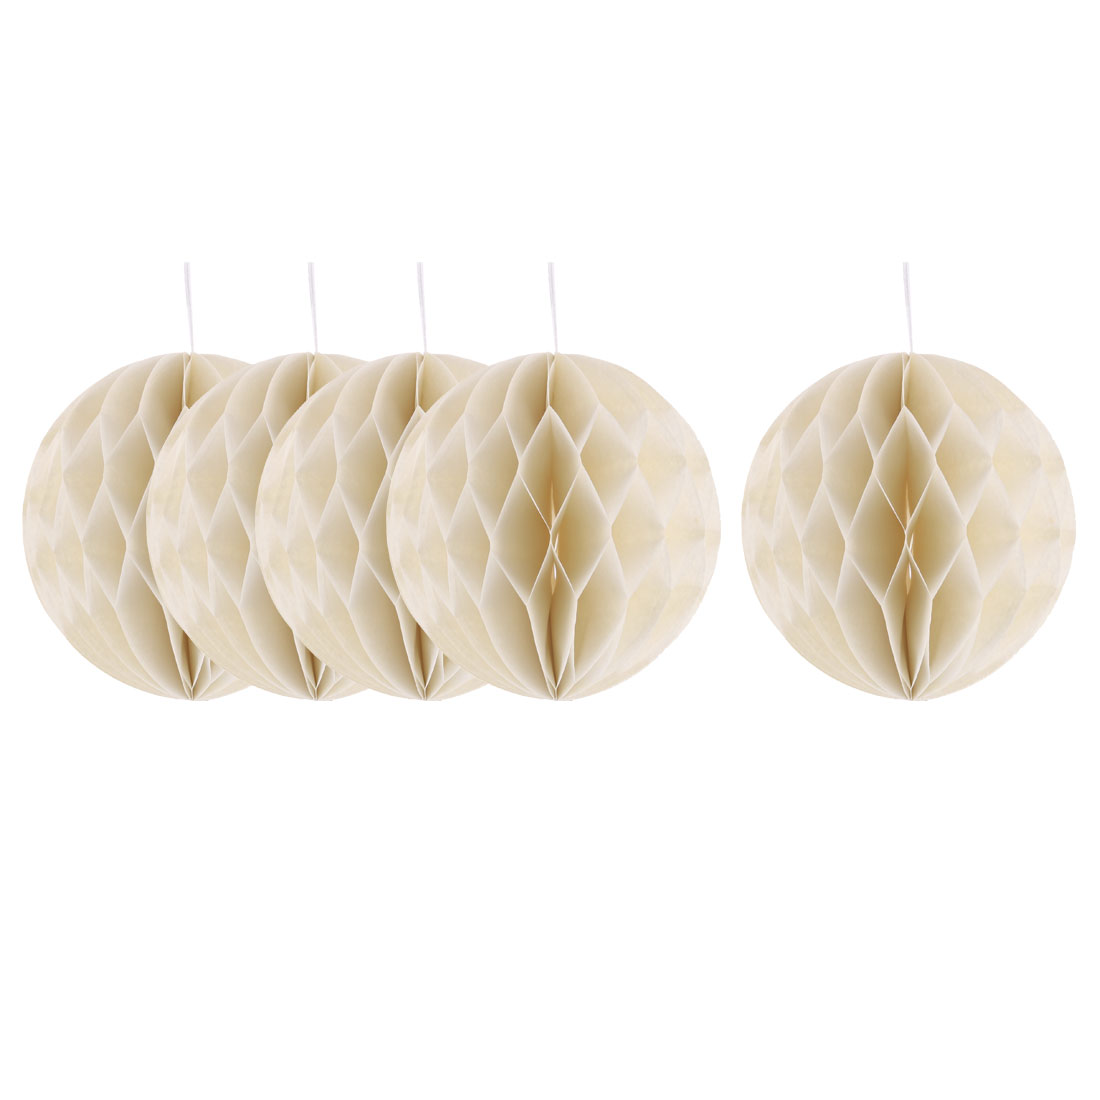 Household Party Paper Wall Window Door DIY Decoration Honeycomb Ball Beige 4 Inch Dia 5 Pcs